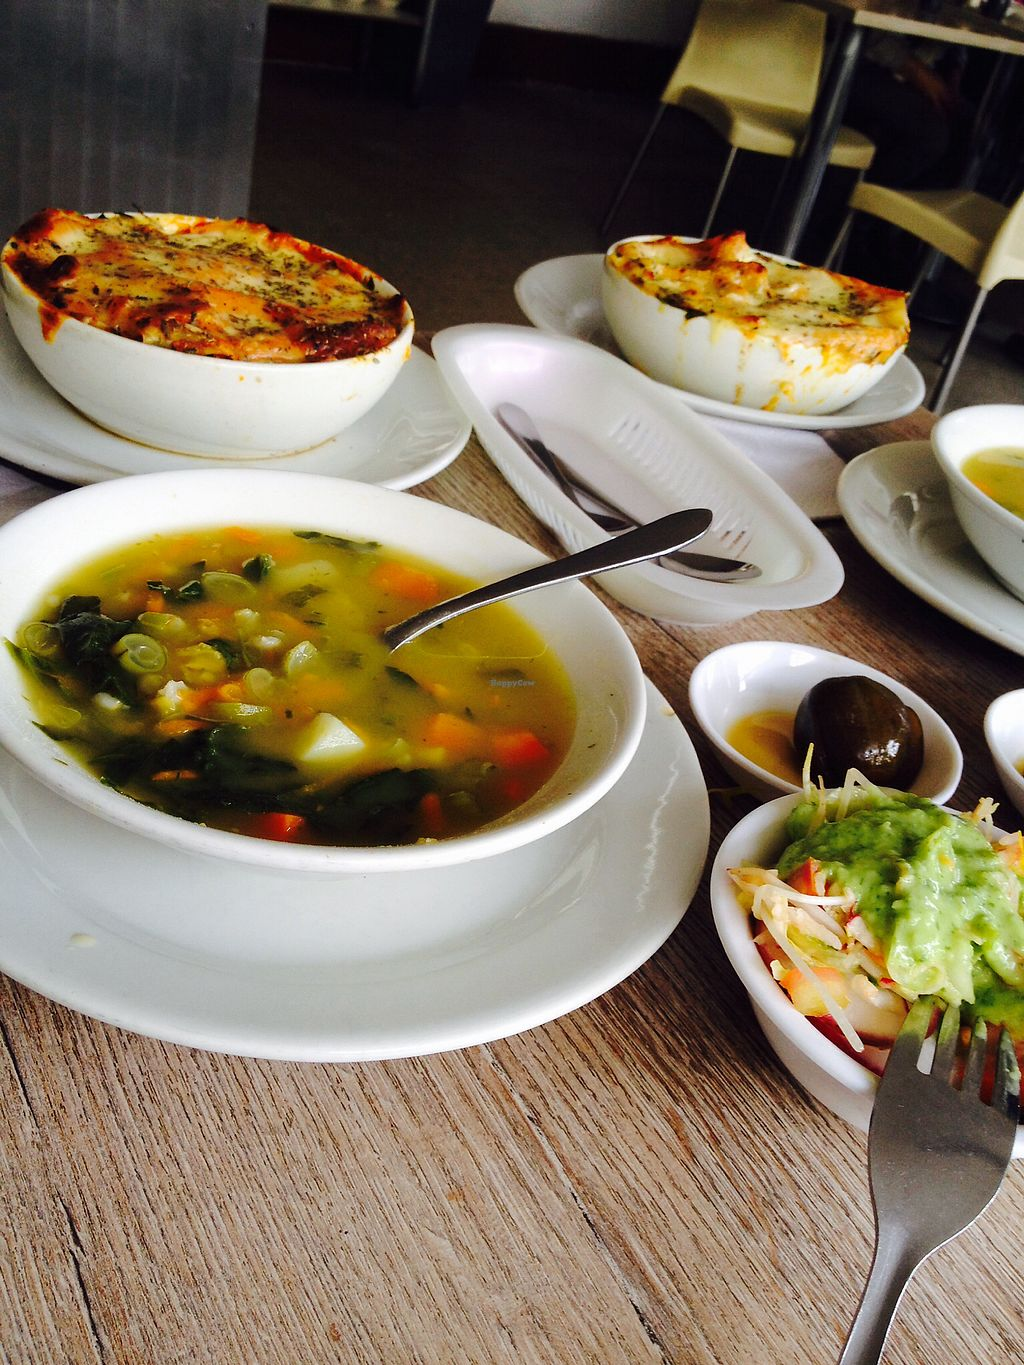 """Photo of Loto Azul Vegetariano  by <a href=""""/members/profile/Stangler"""">Stangler</a> <br/>Lunch / soup, lasagna, salad, juice, postre <br/> October 31, 2017  - <a href='/contact/abuse/image/10092/320554'>Report</a>"""